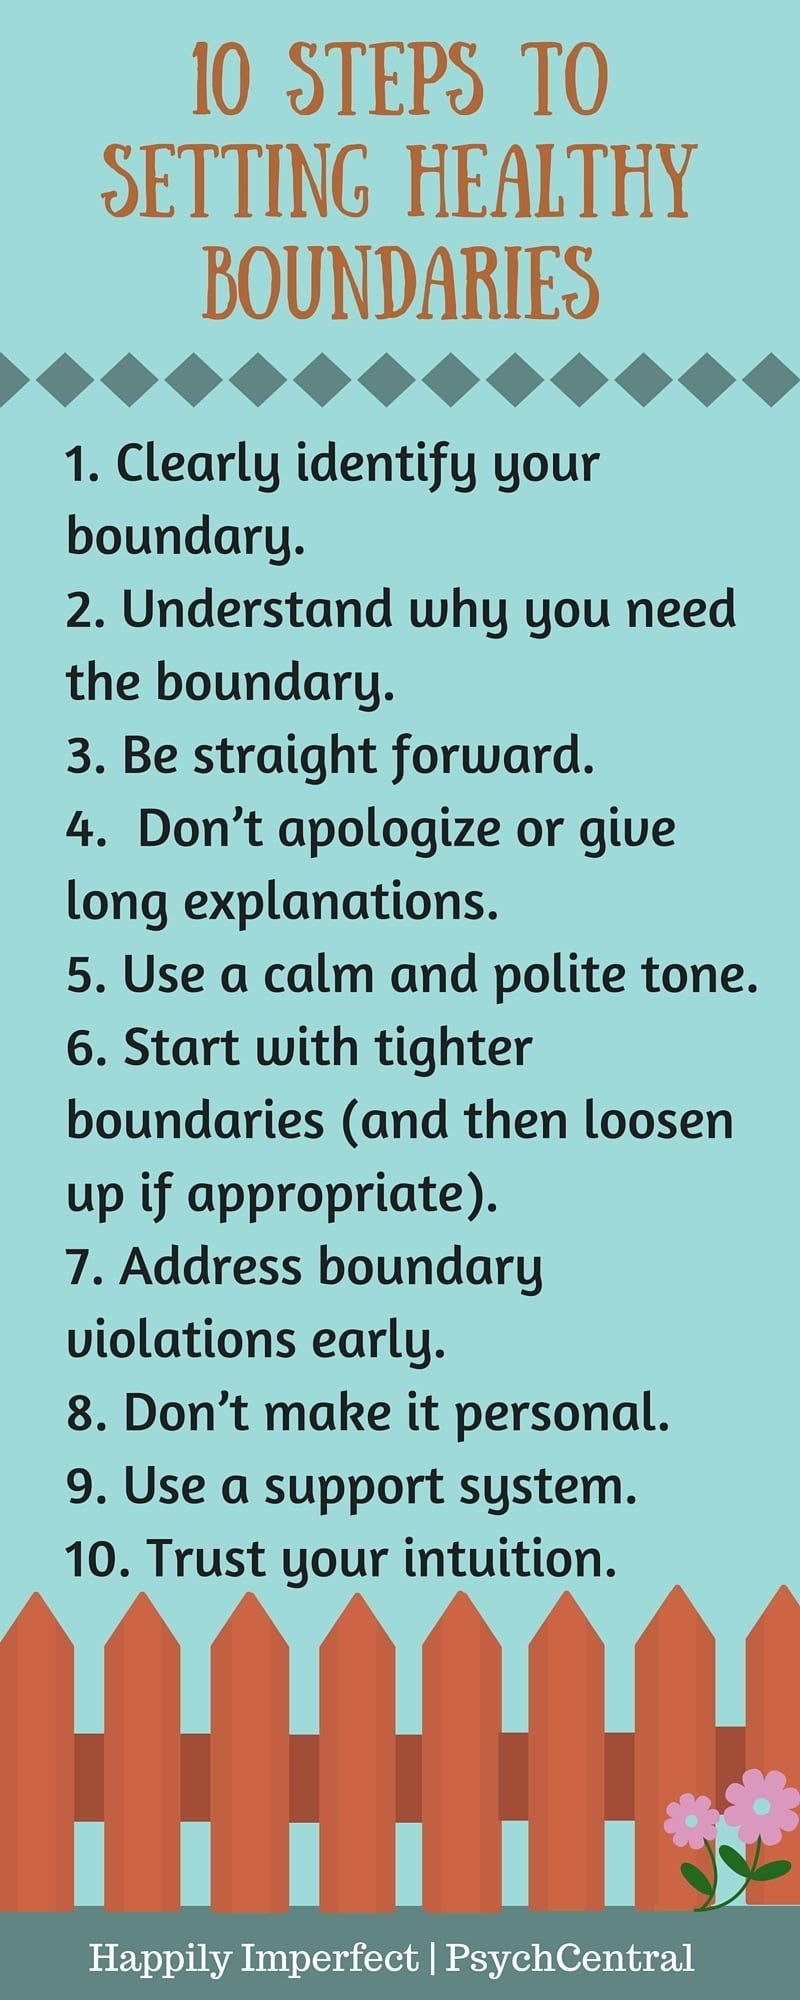 how to maintain boundaries in relationships